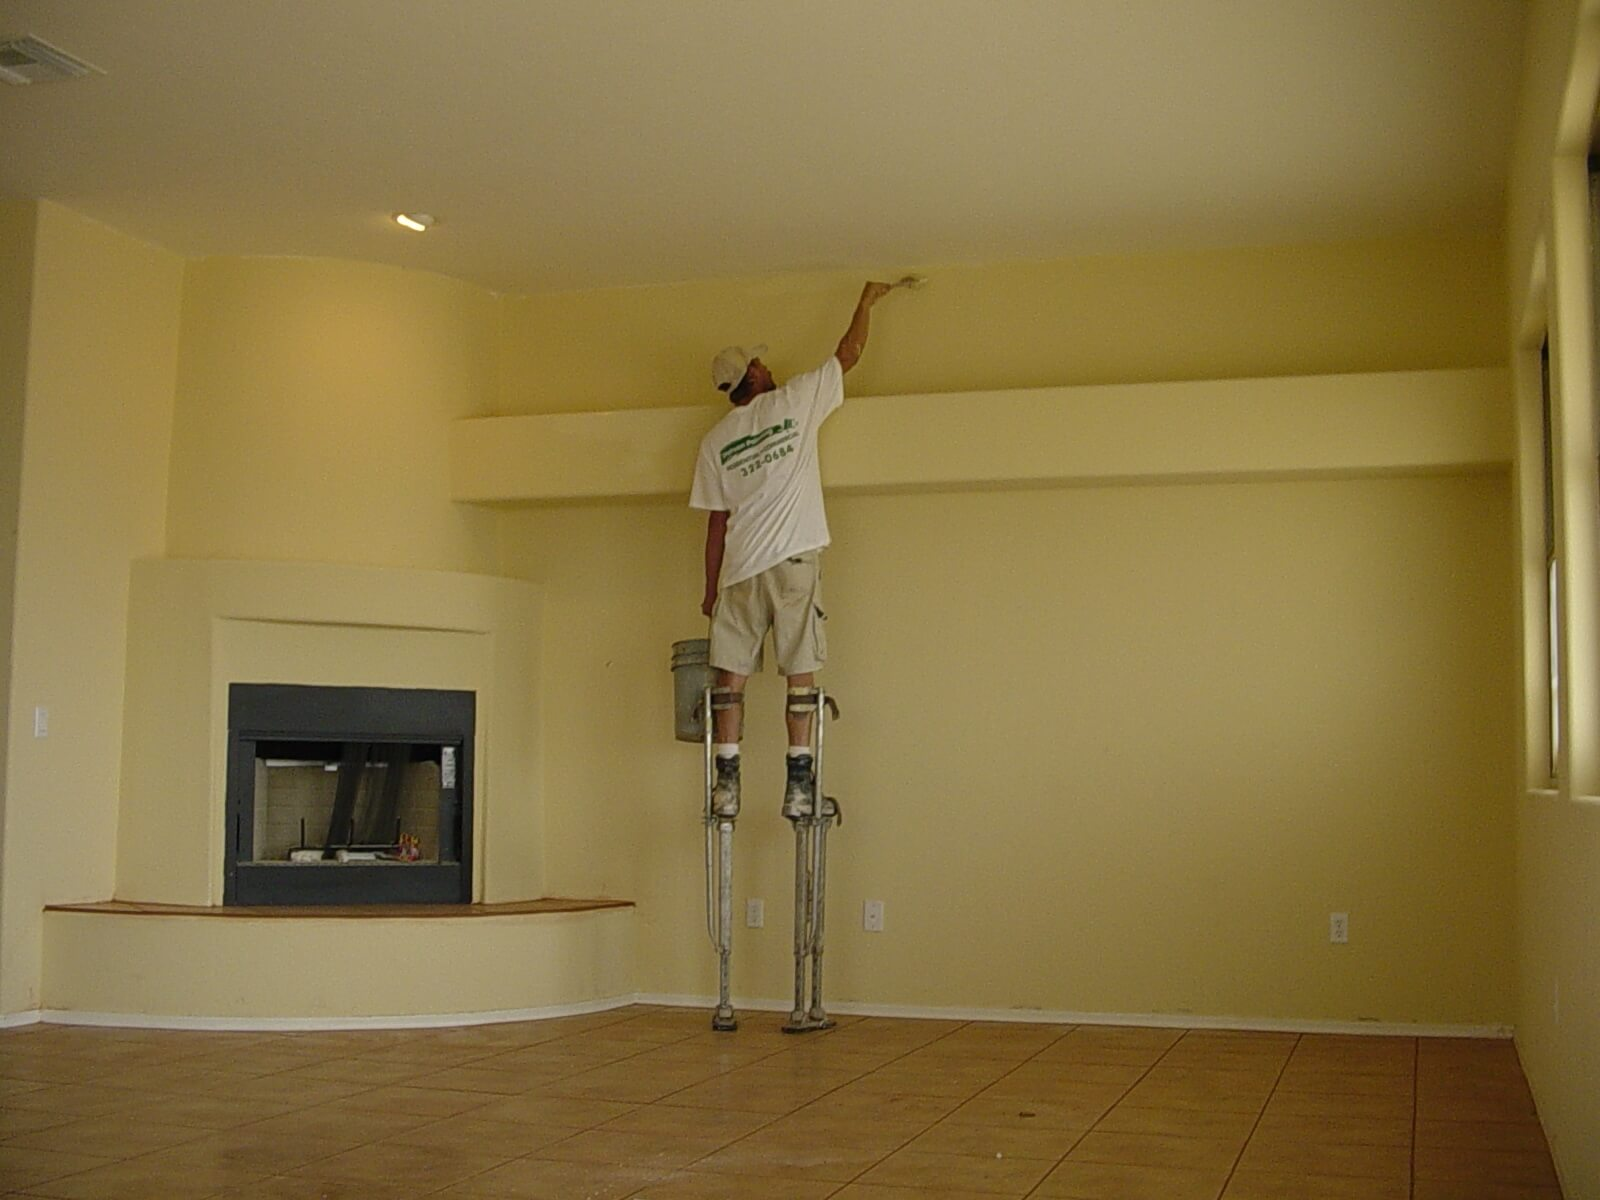 Residential Painting Services-Texarkana TX Professional Painting Contractors-We offer Residential & Commercial Painting, Interior Painting, Exterior Painting, Primer Painting, Industrial Painting, Professional Painters, Institutional Painters, and more.